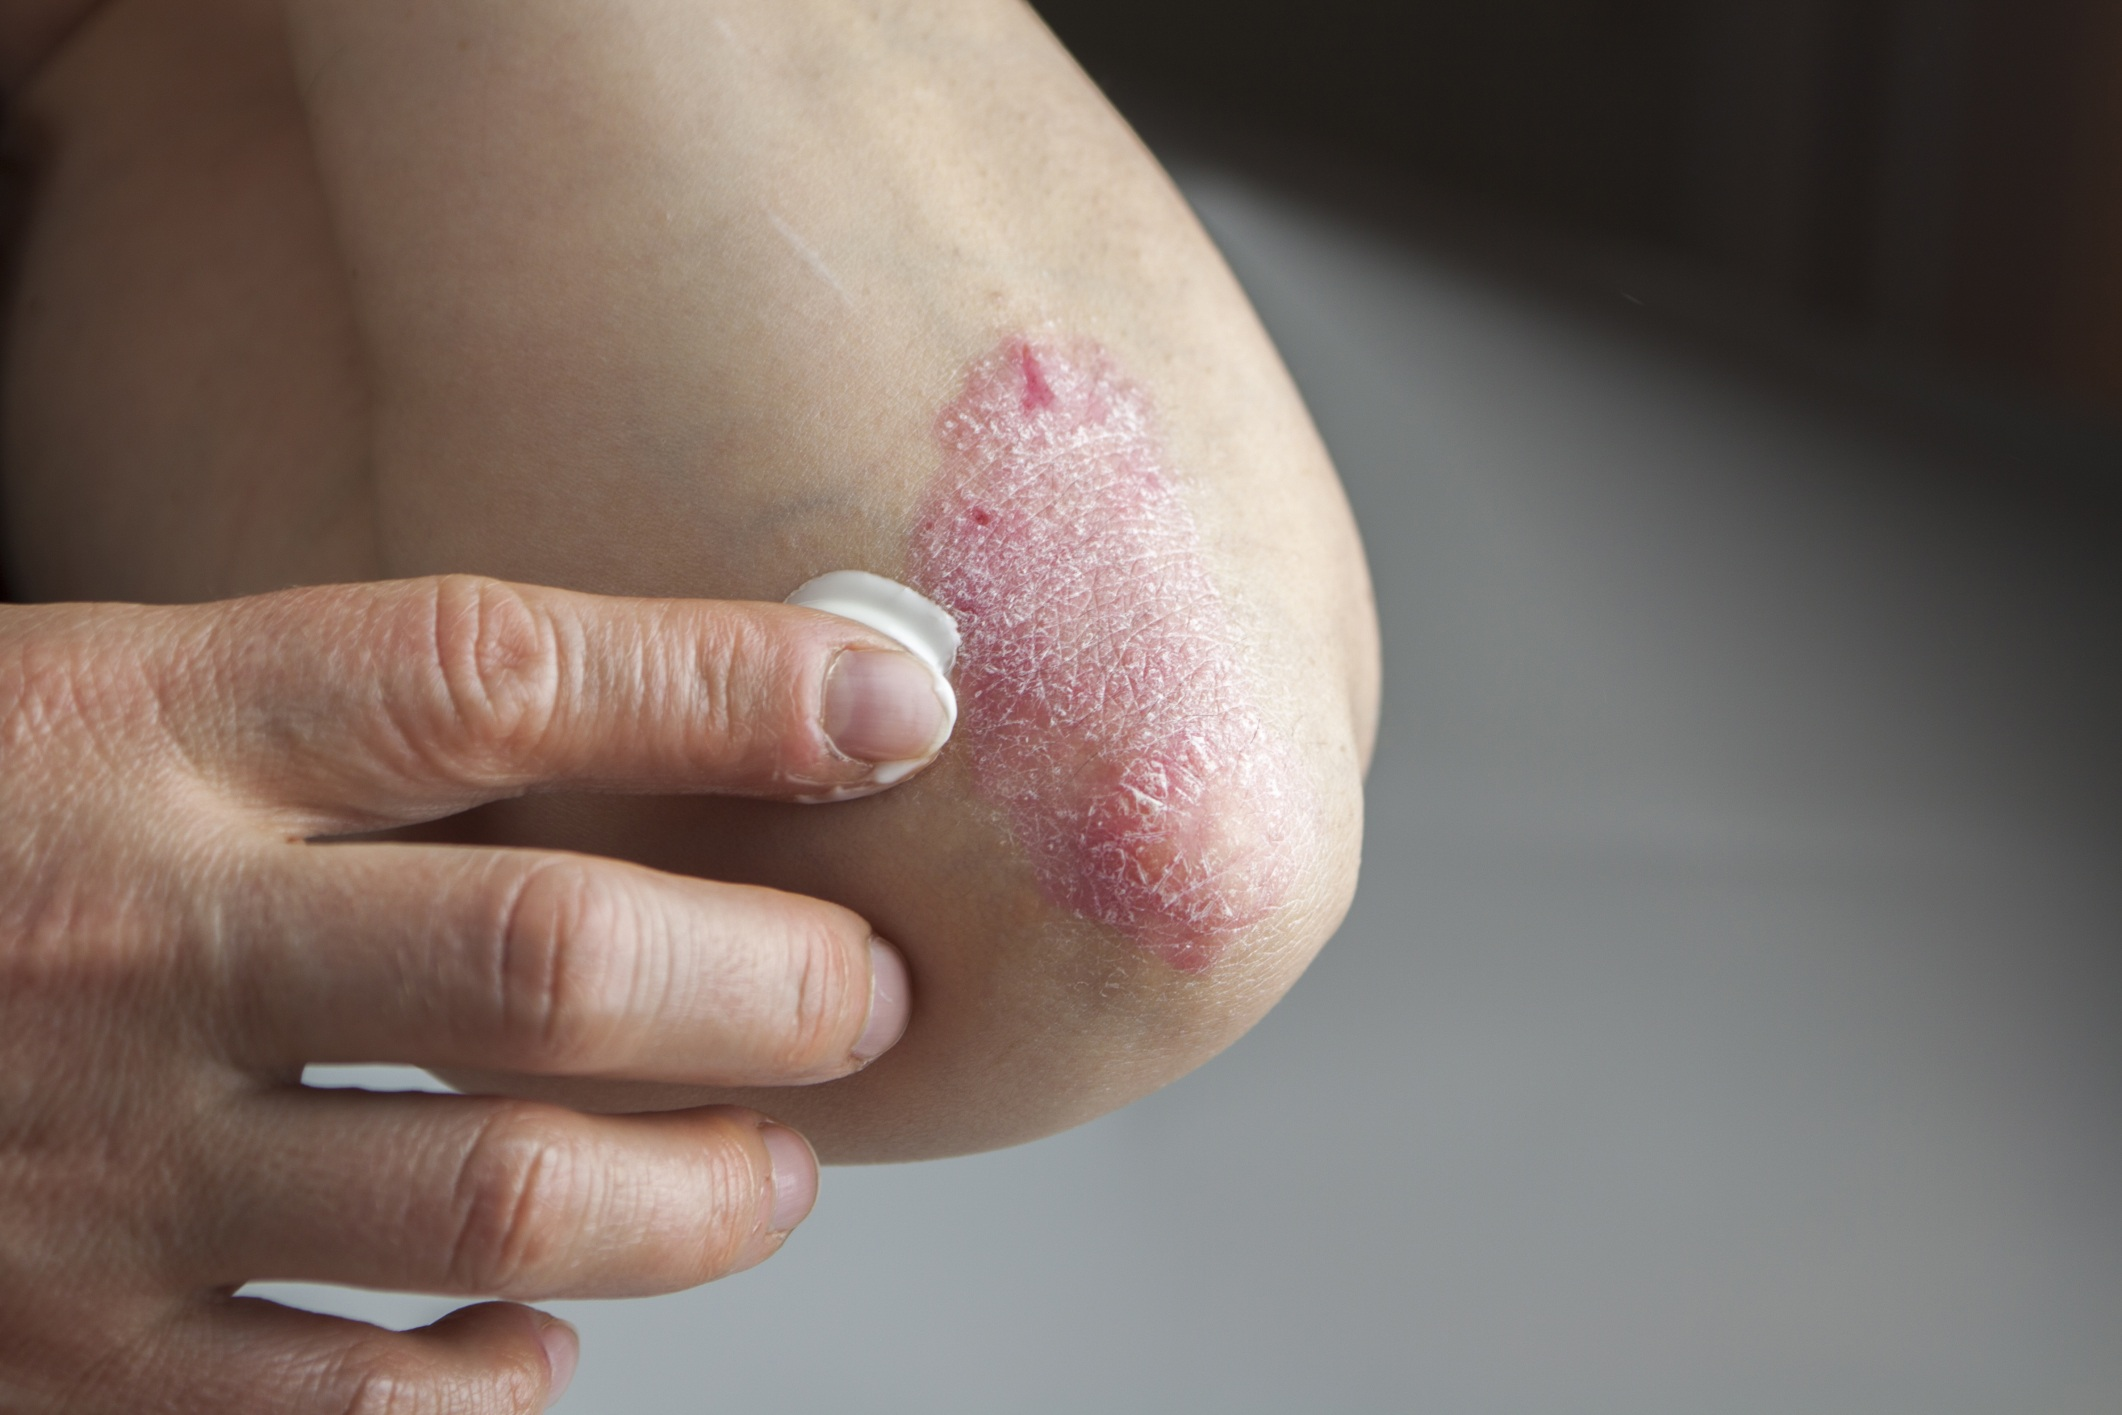 FIND OUT MORE ABOUT MEDICAL DERMATOLOGY